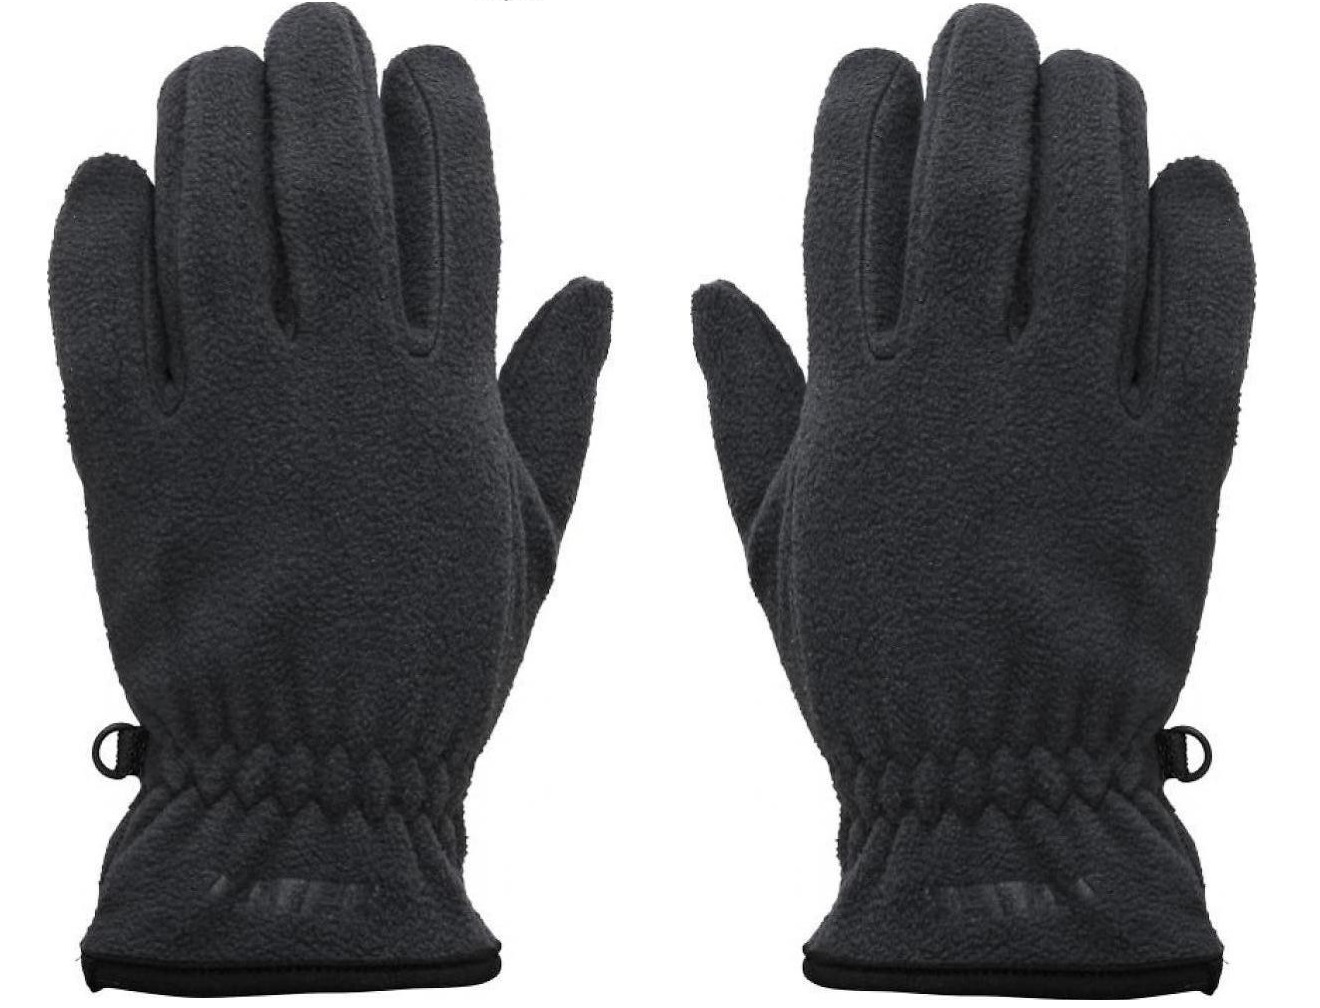 V3TEC Fleece Handschuh Kd. 103631, black